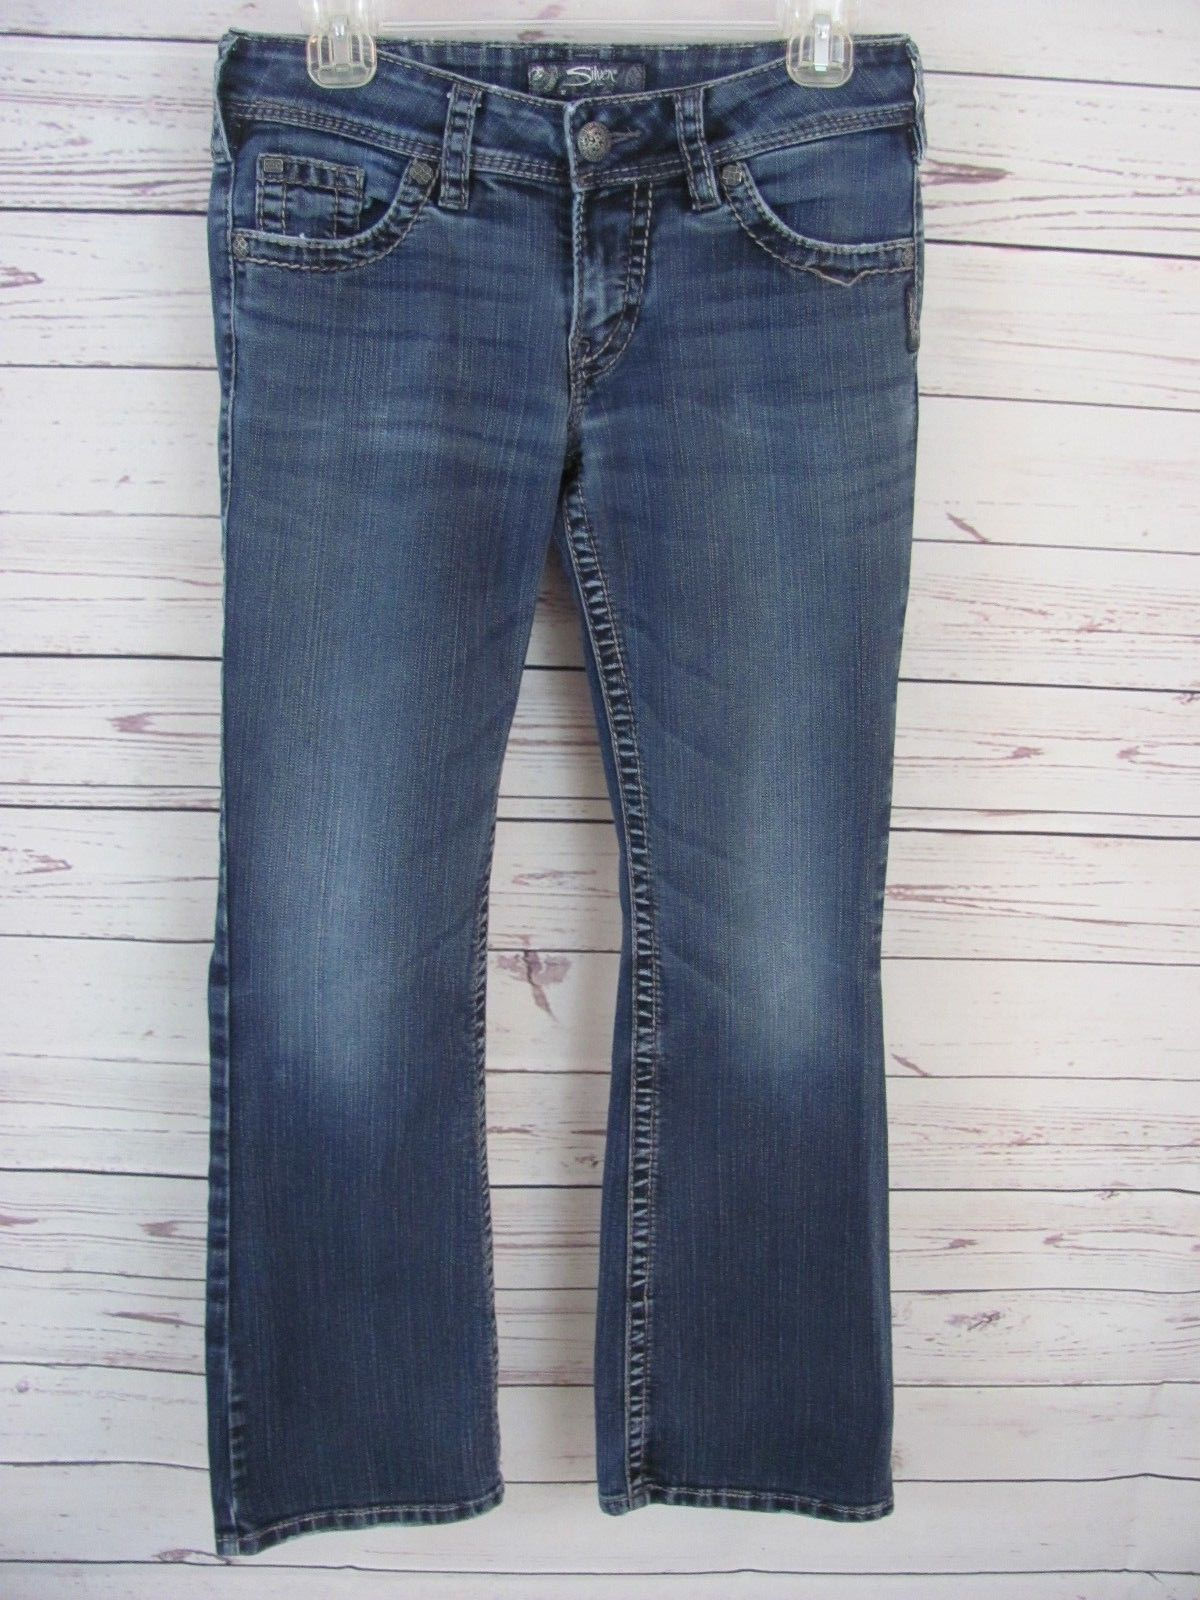 Primary image for Silver Jeans Womens Size 27/30 (28 x 29 Actual) Suki Surplus Bootcut Medium Wash